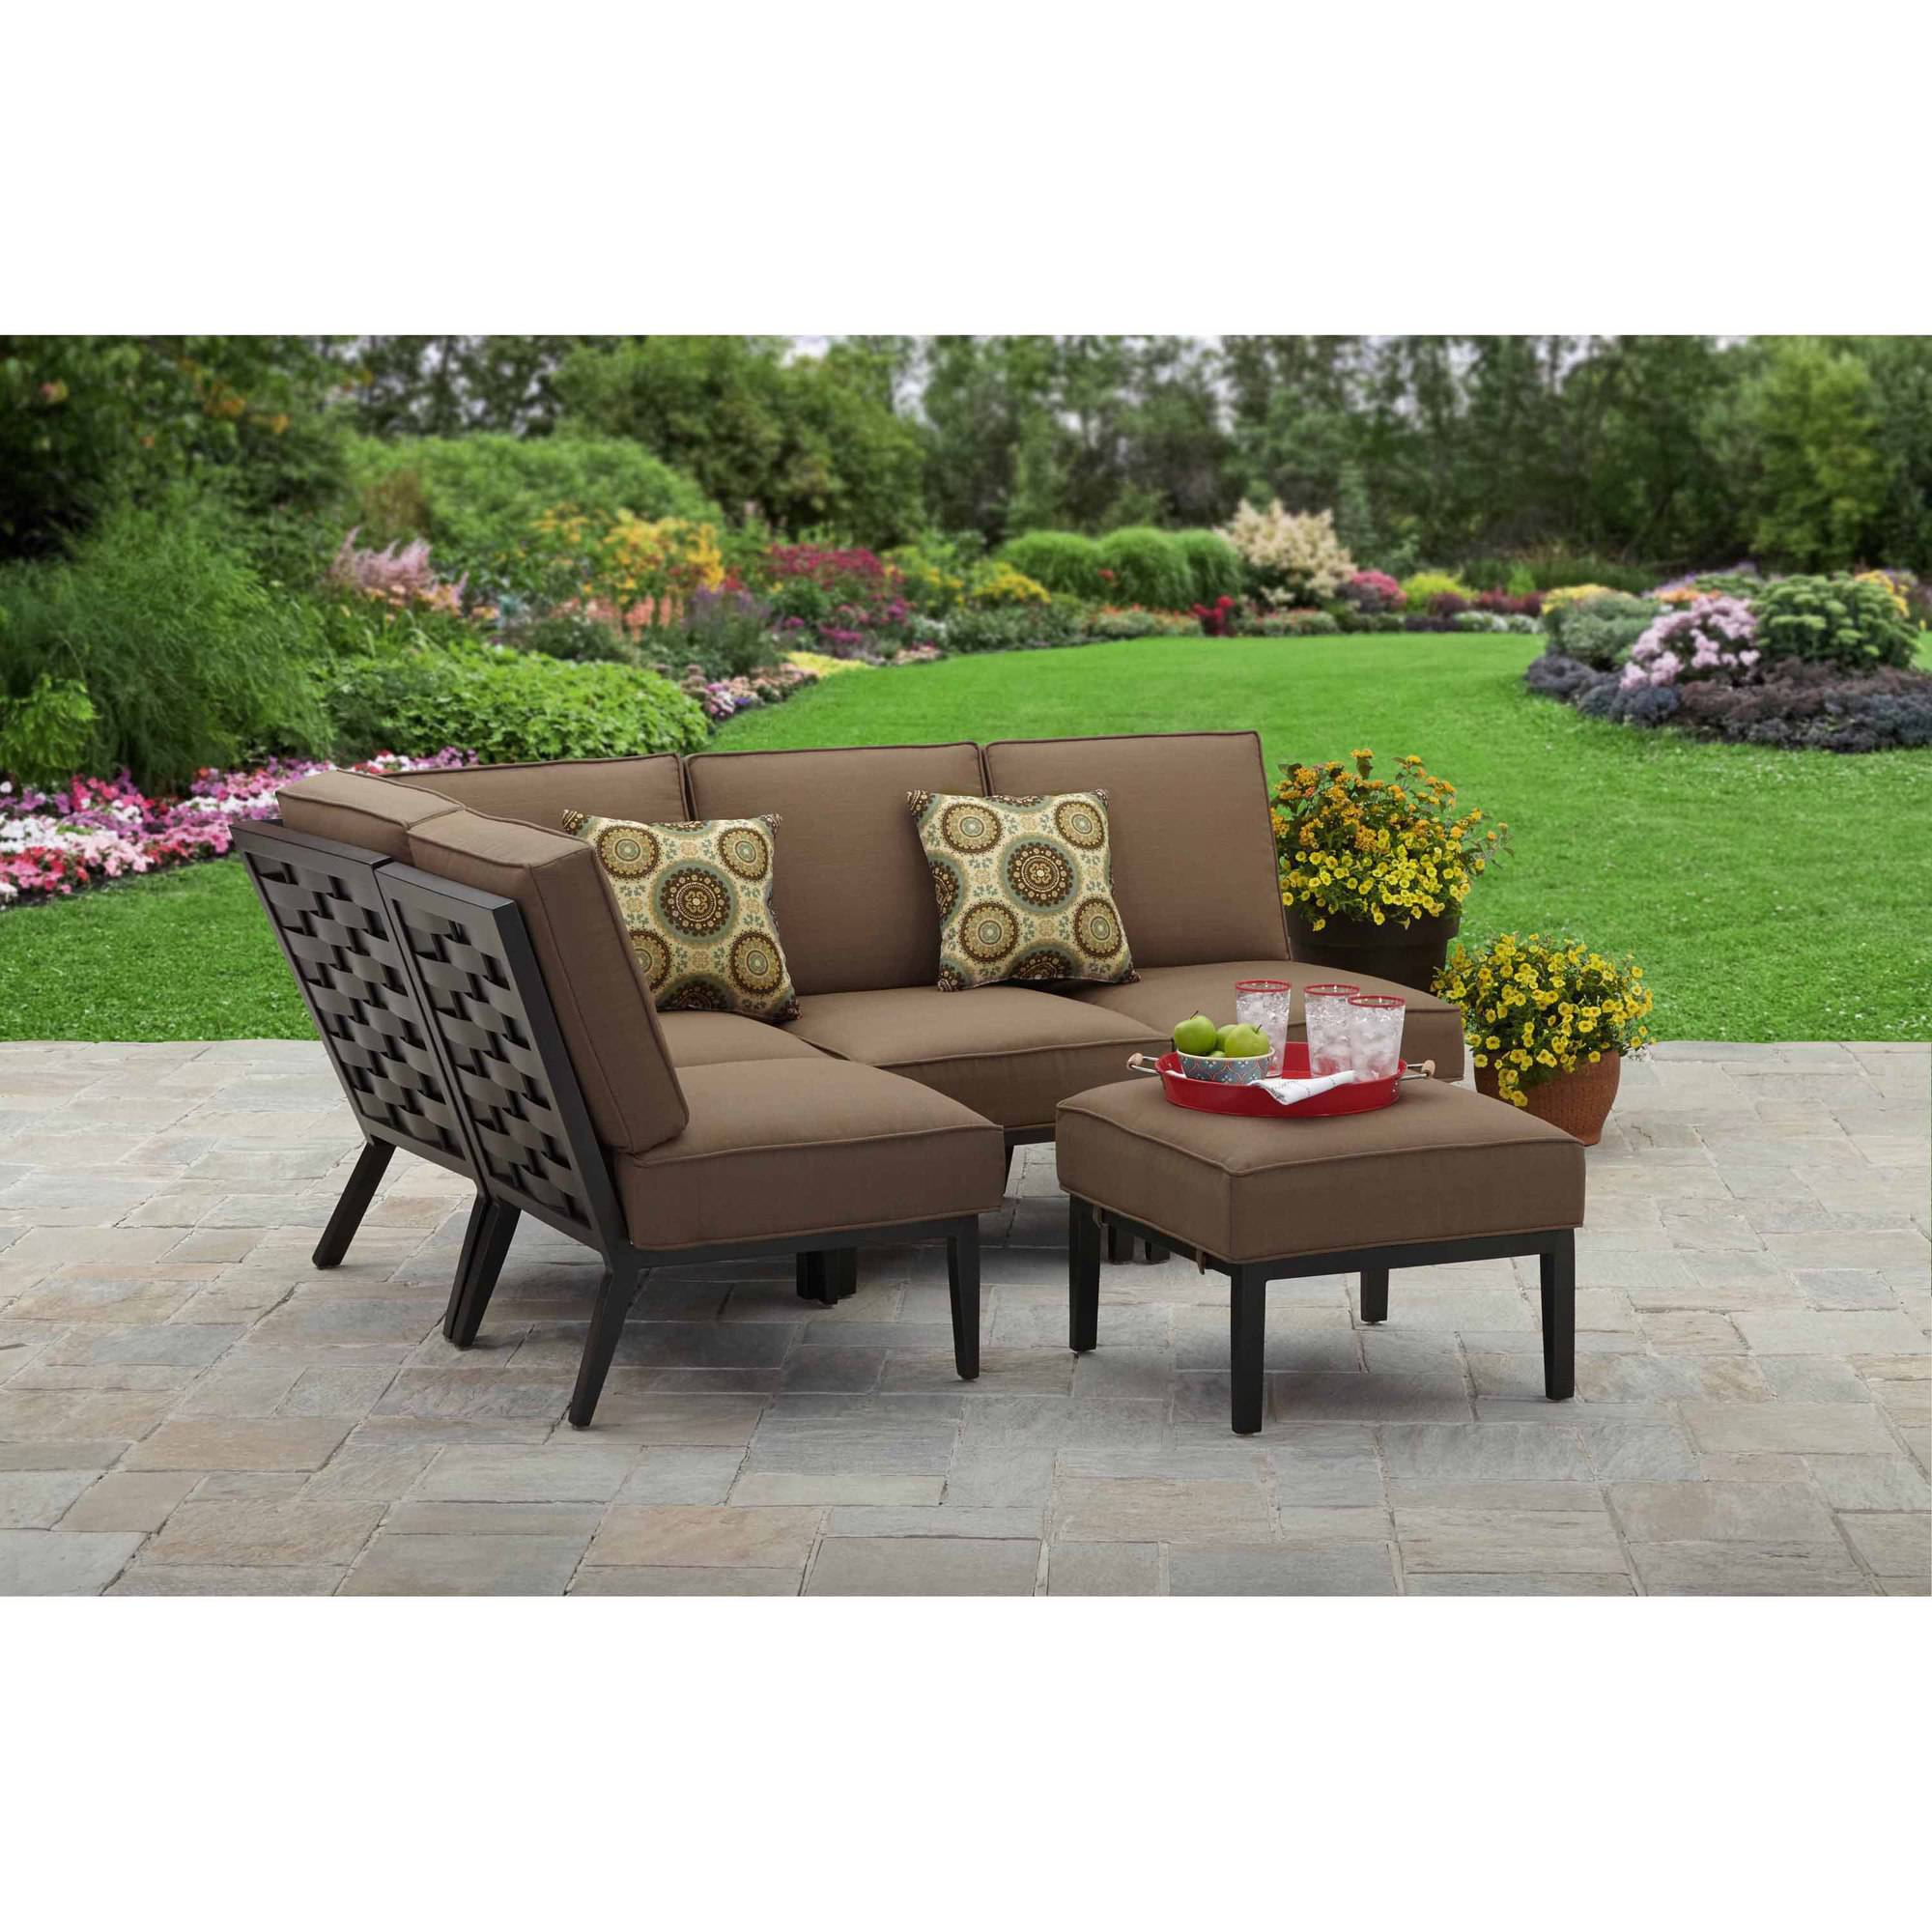 Better Homes And Gardens Hampton Road 5 Piece Cushion Sectional Set    Walmart.com